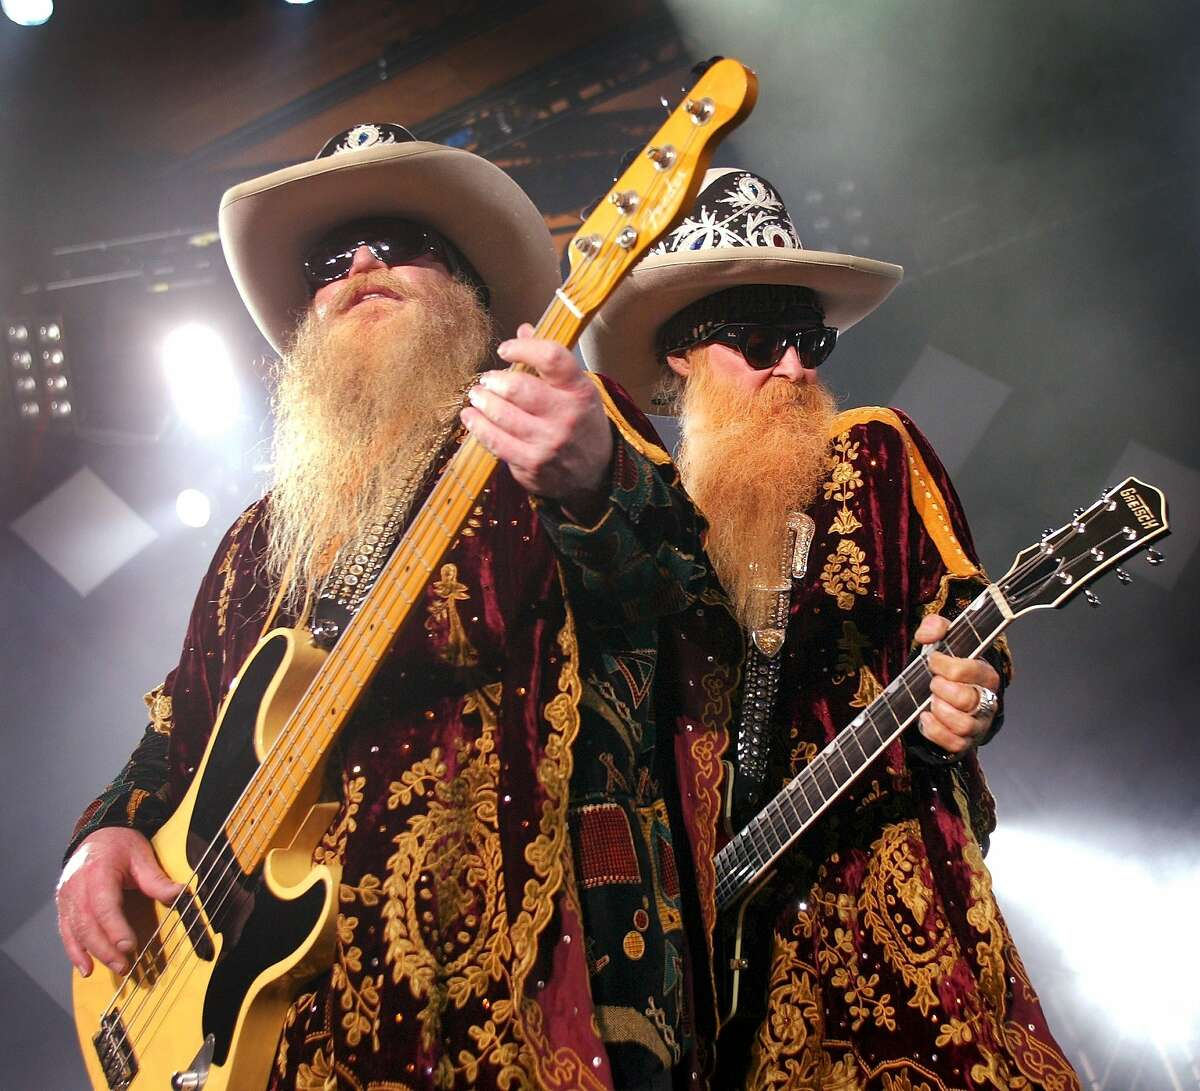 Lead singer and guitarist Billy F. Gibbons, right, and bass player Dusty Hill of the Texas rock group ZZ Top perform on the last night of the 37th Montreux Jazz Festival in Montreux, Switzerland, late Sunday, July 20, 2003. (AP Photo/Keystone/Fabrice Coffrini)